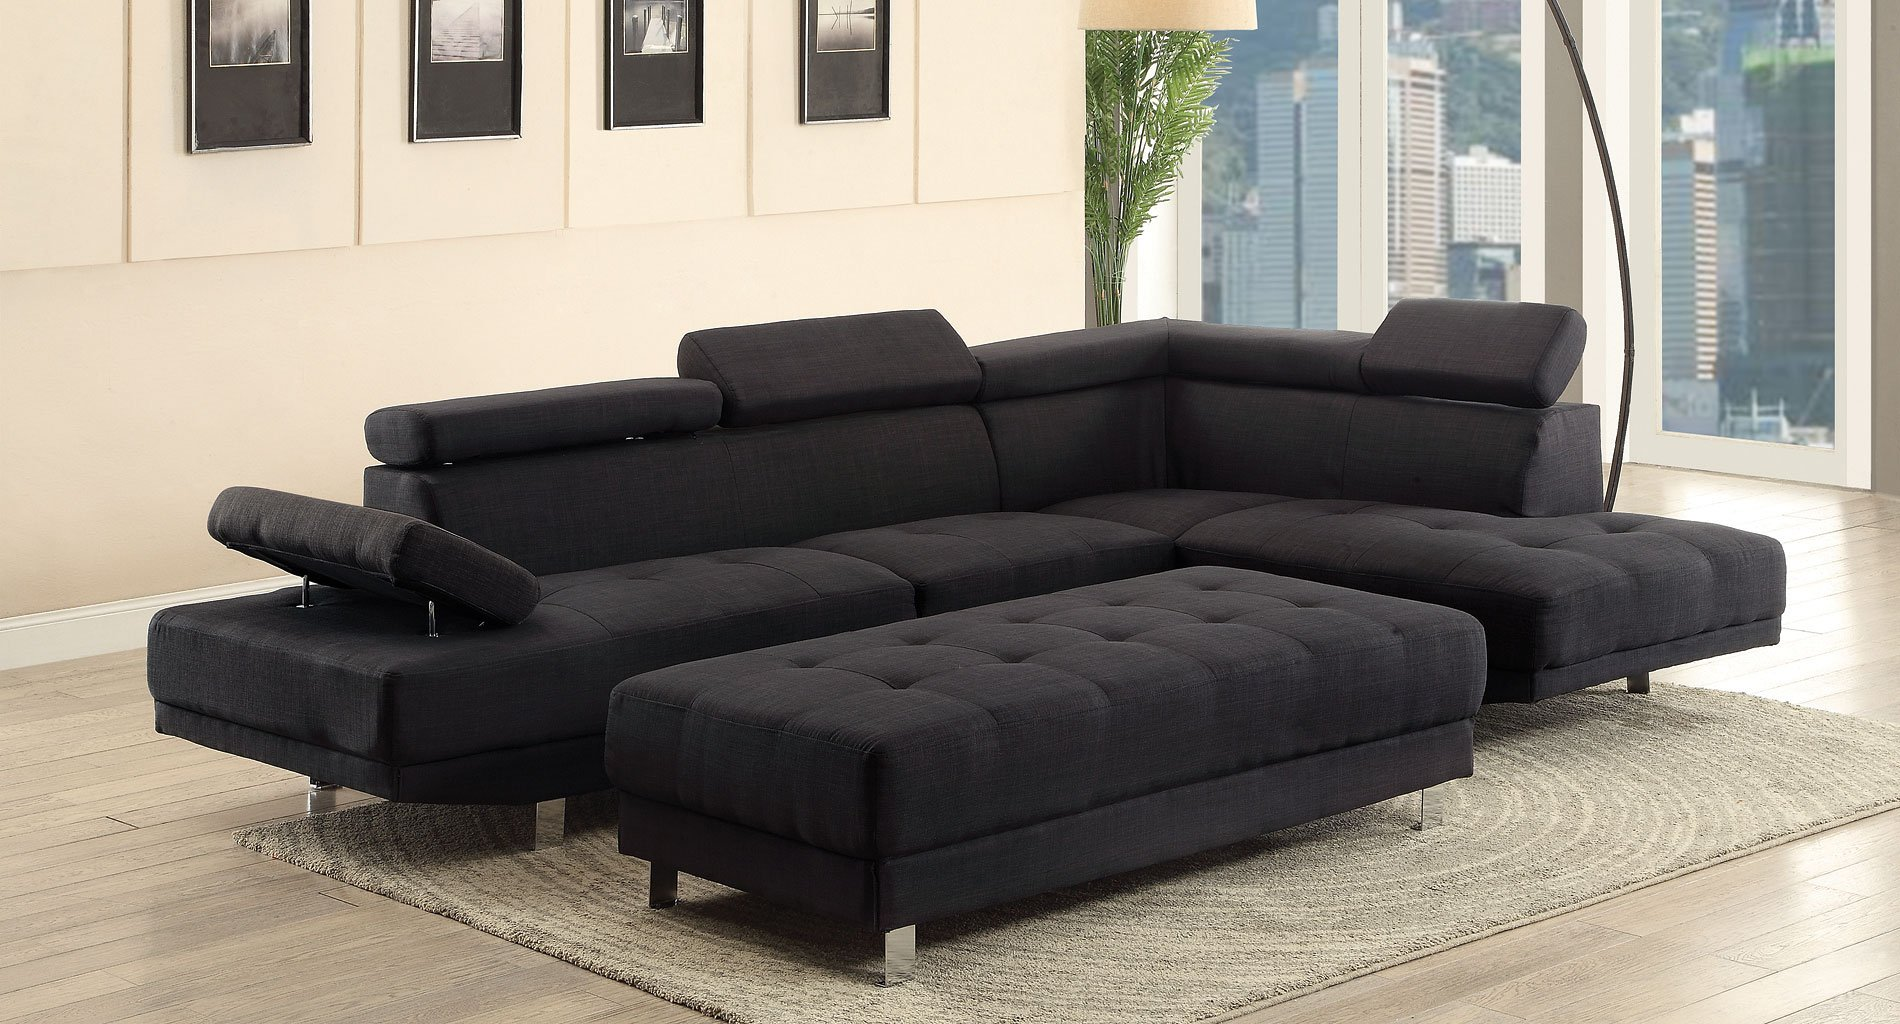 Milan Sectional Set Black Glory Furniture Furniture Cart